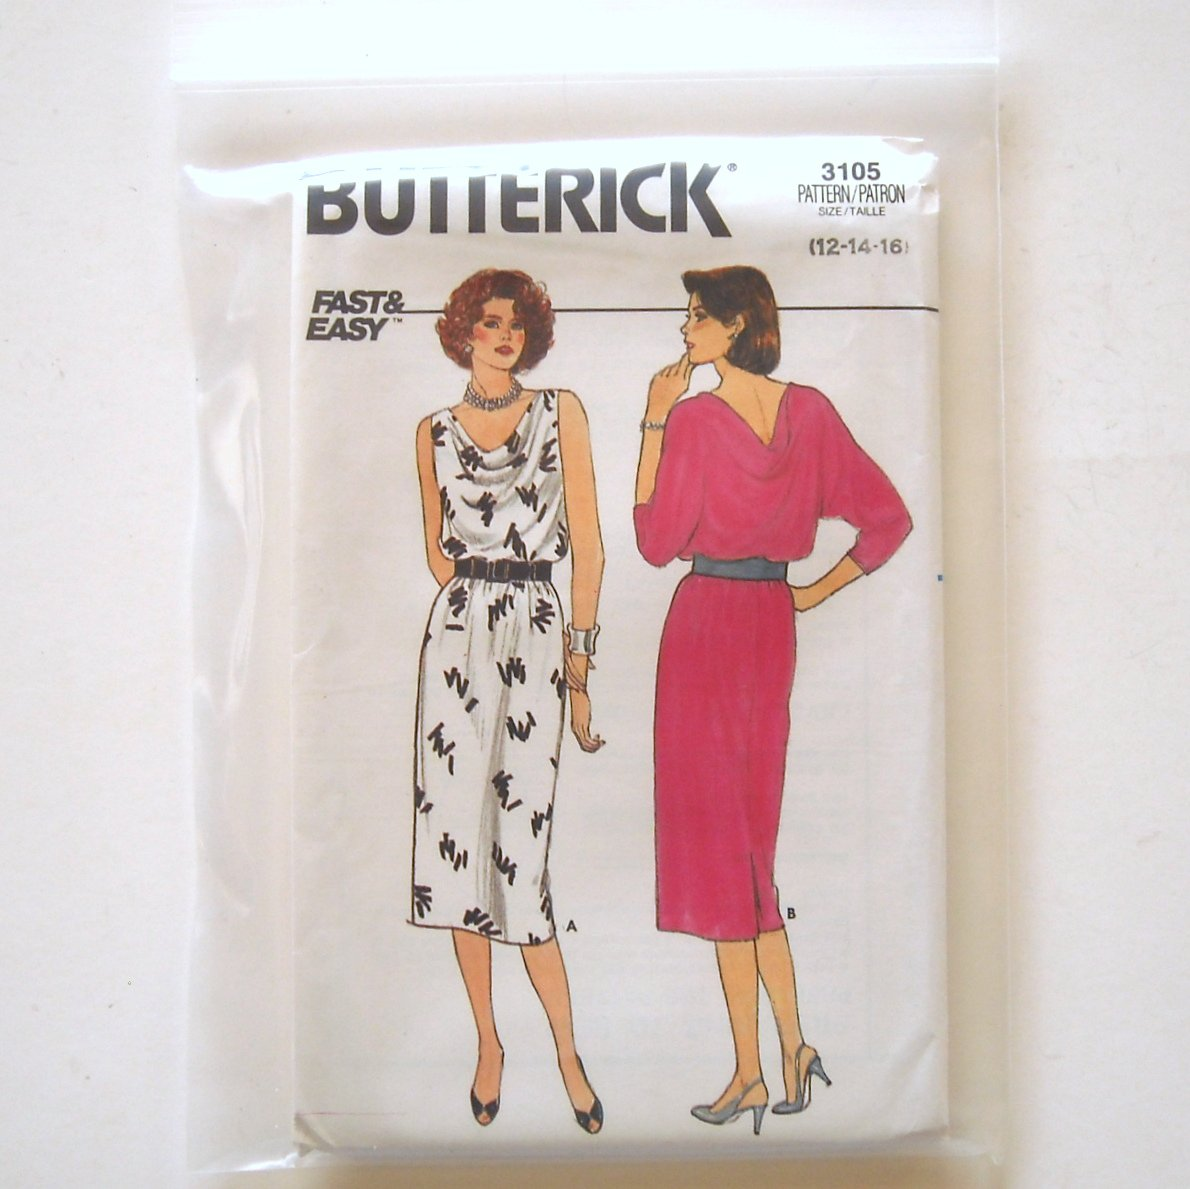 Misses Dress Size 12 - 16 Vintage Butterick Sewing Pattern 3105